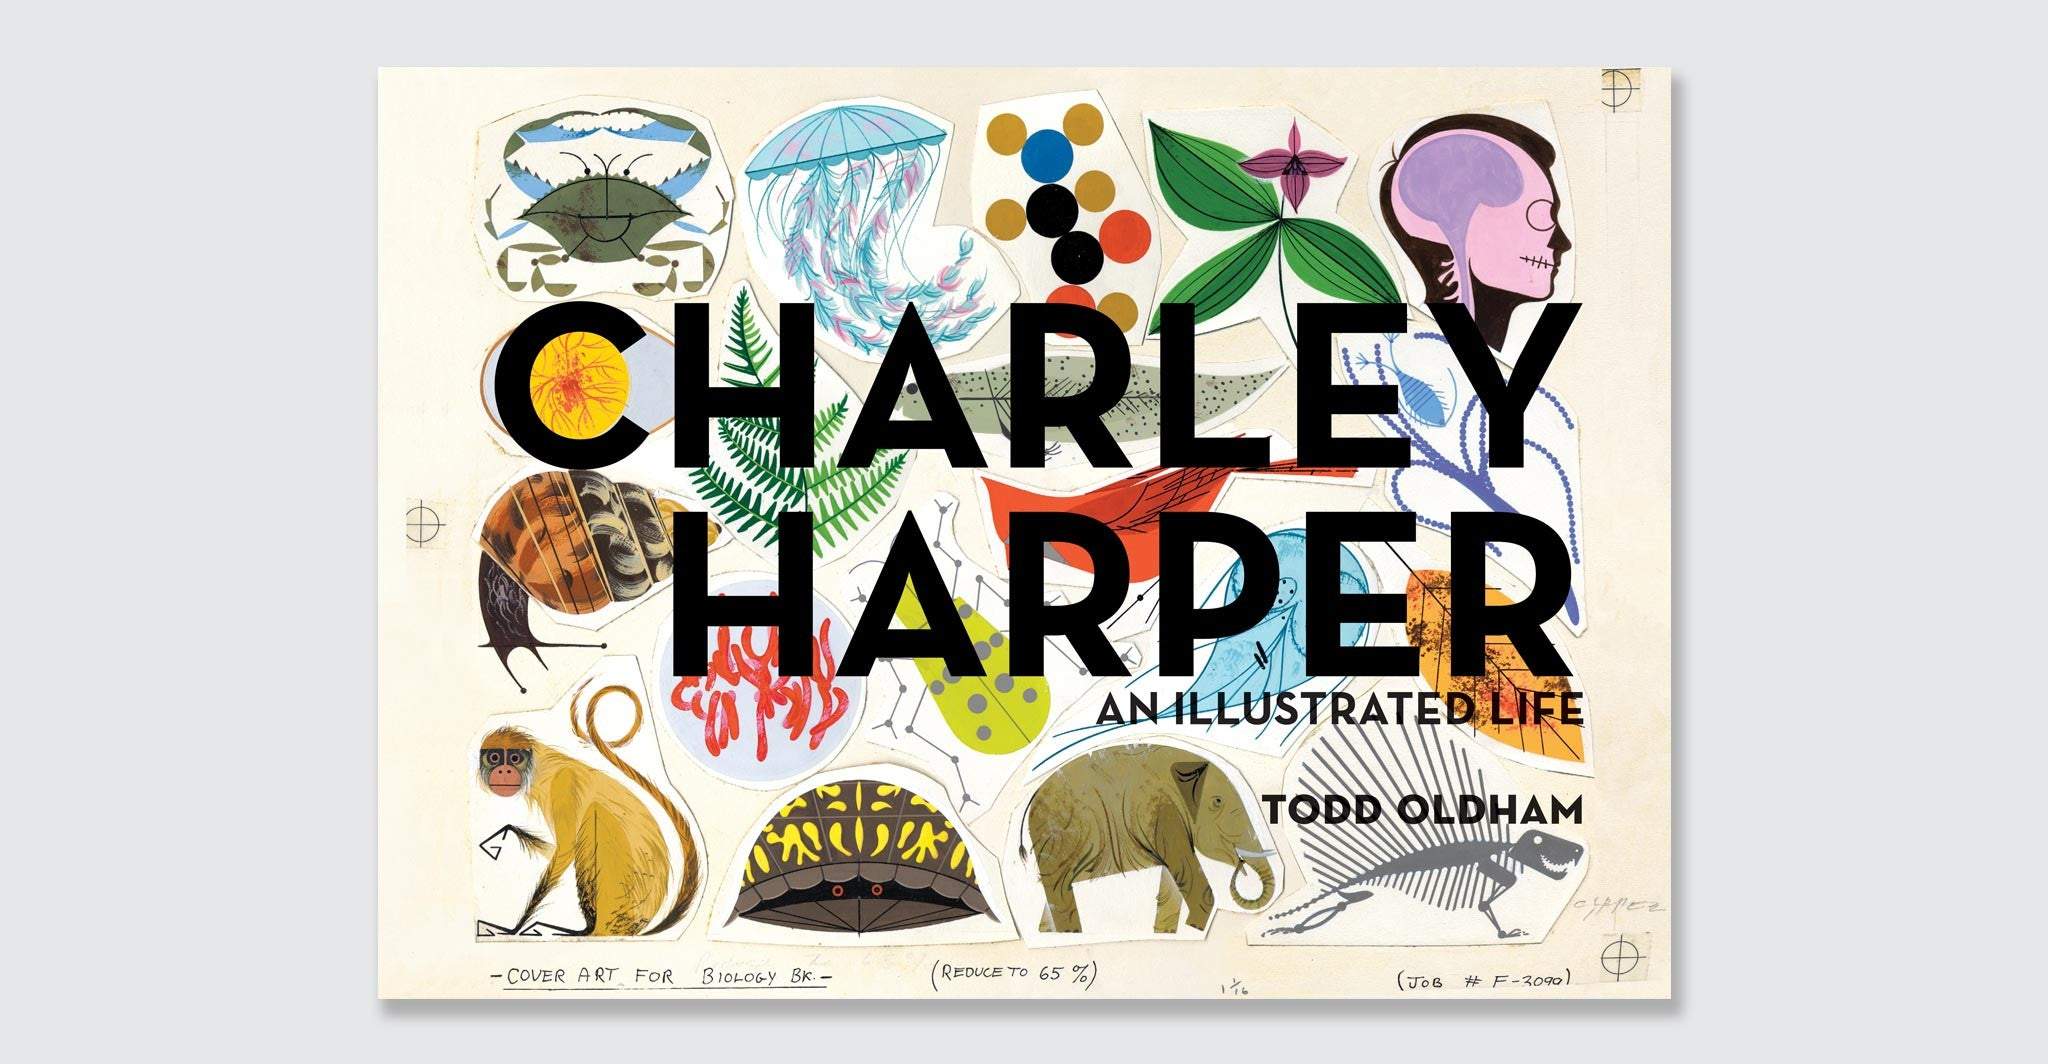 Illustrated Book Cover Notes : Charley harper illustrated life jumbo hardcover edition by